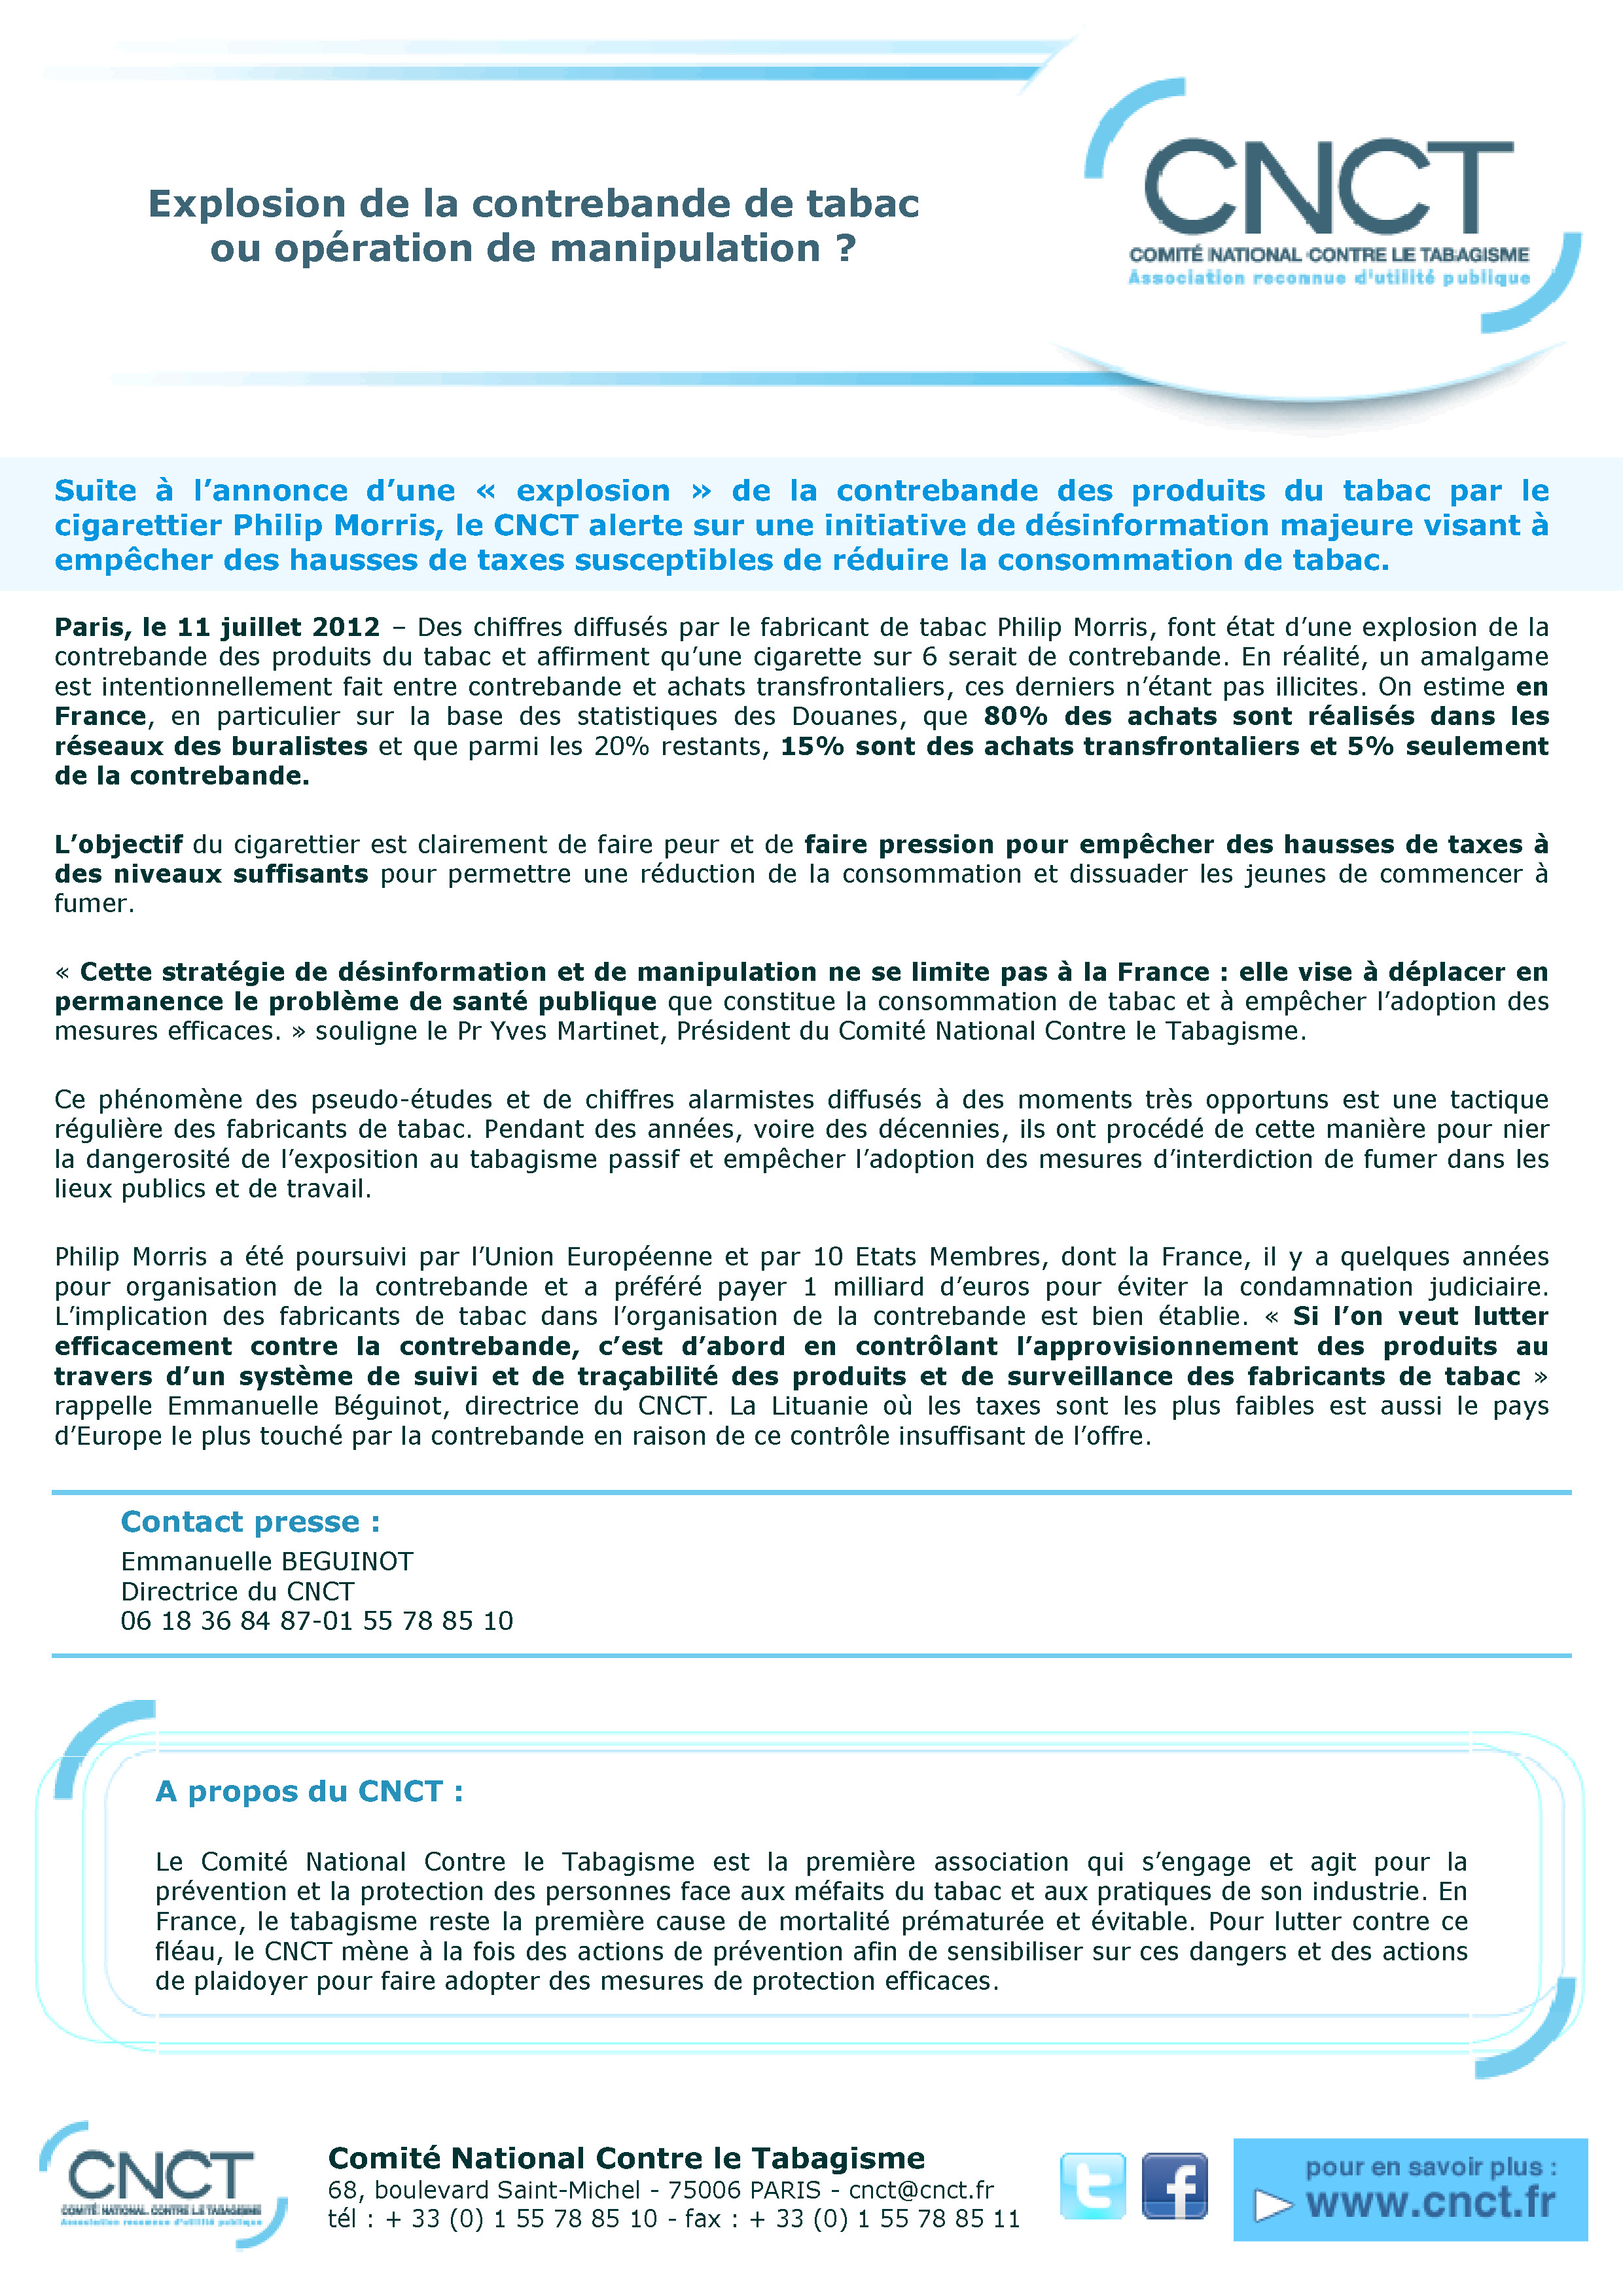 CNCT-CP_contrebande-tabac-mythe-et-realite-11juil2012.jpg